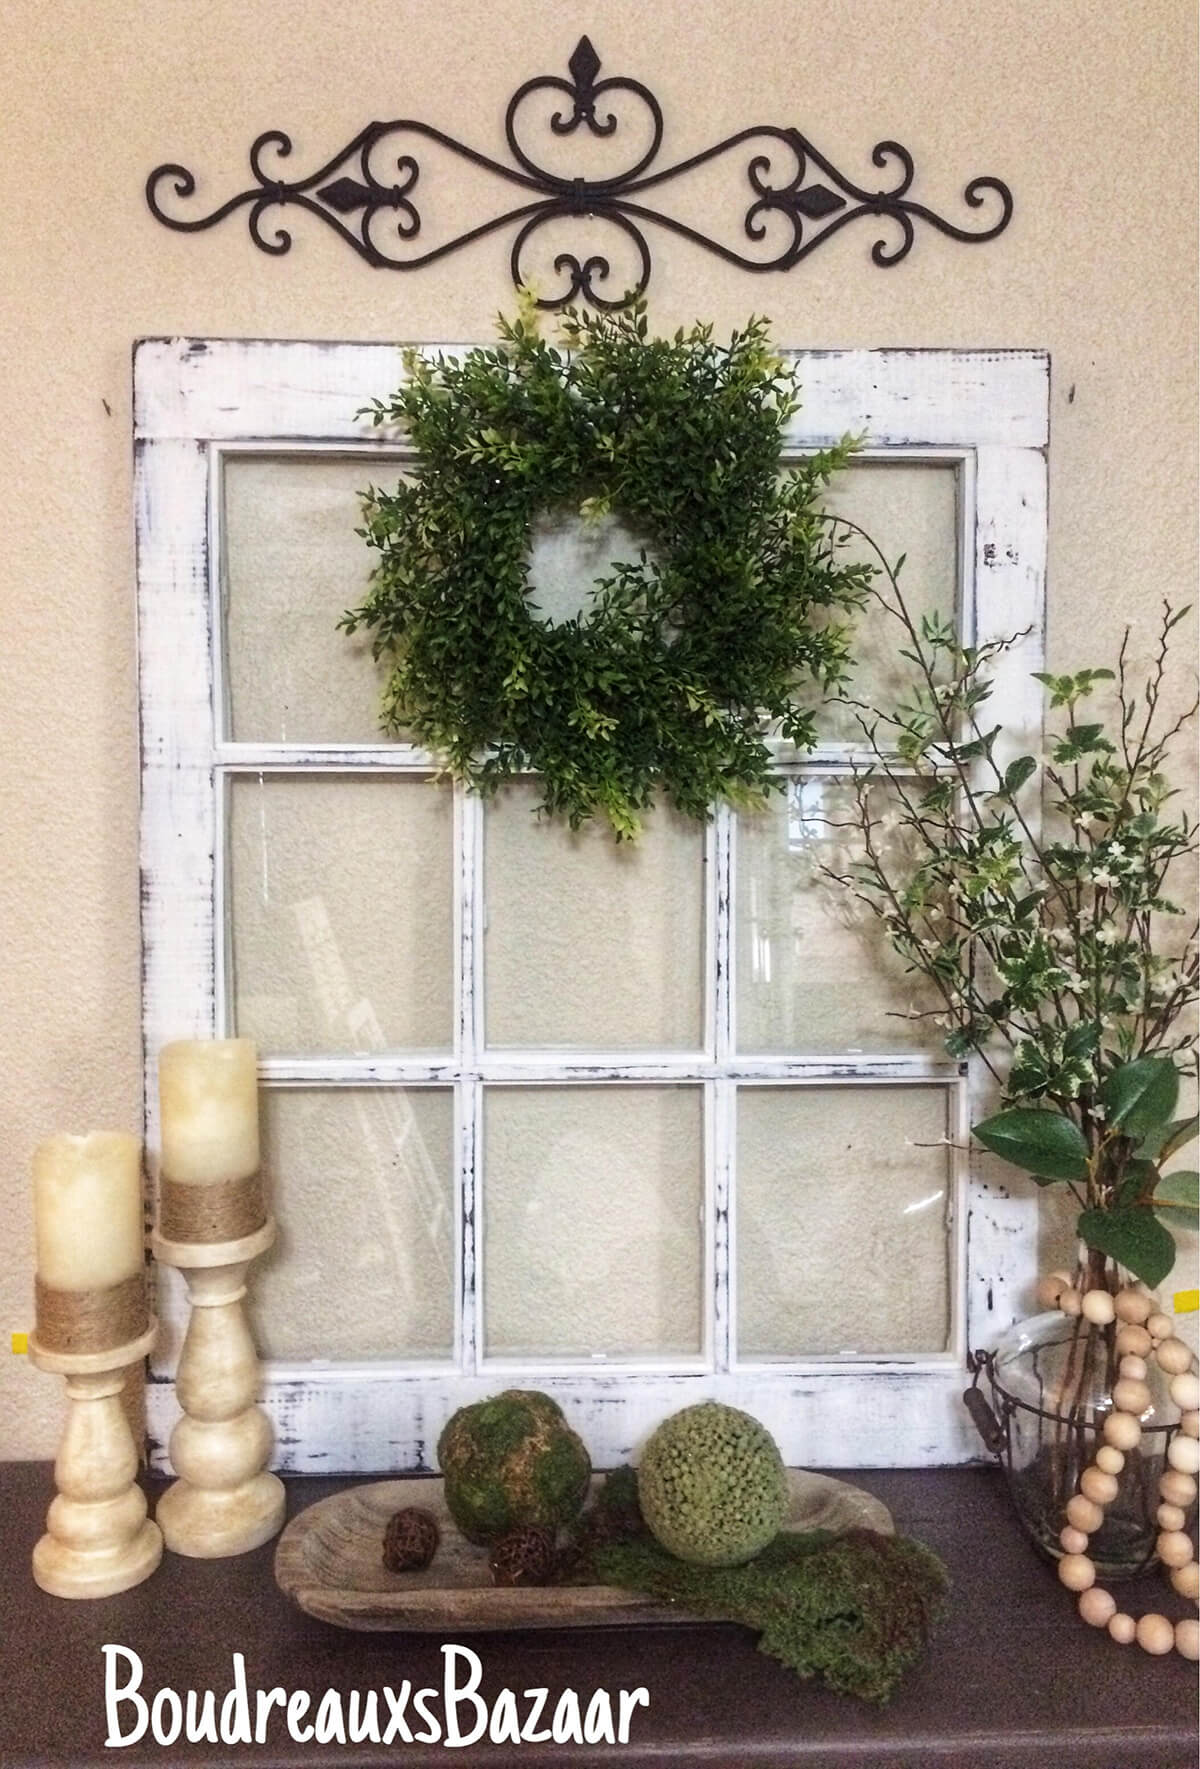 Window Pane and Wreath Entry Display